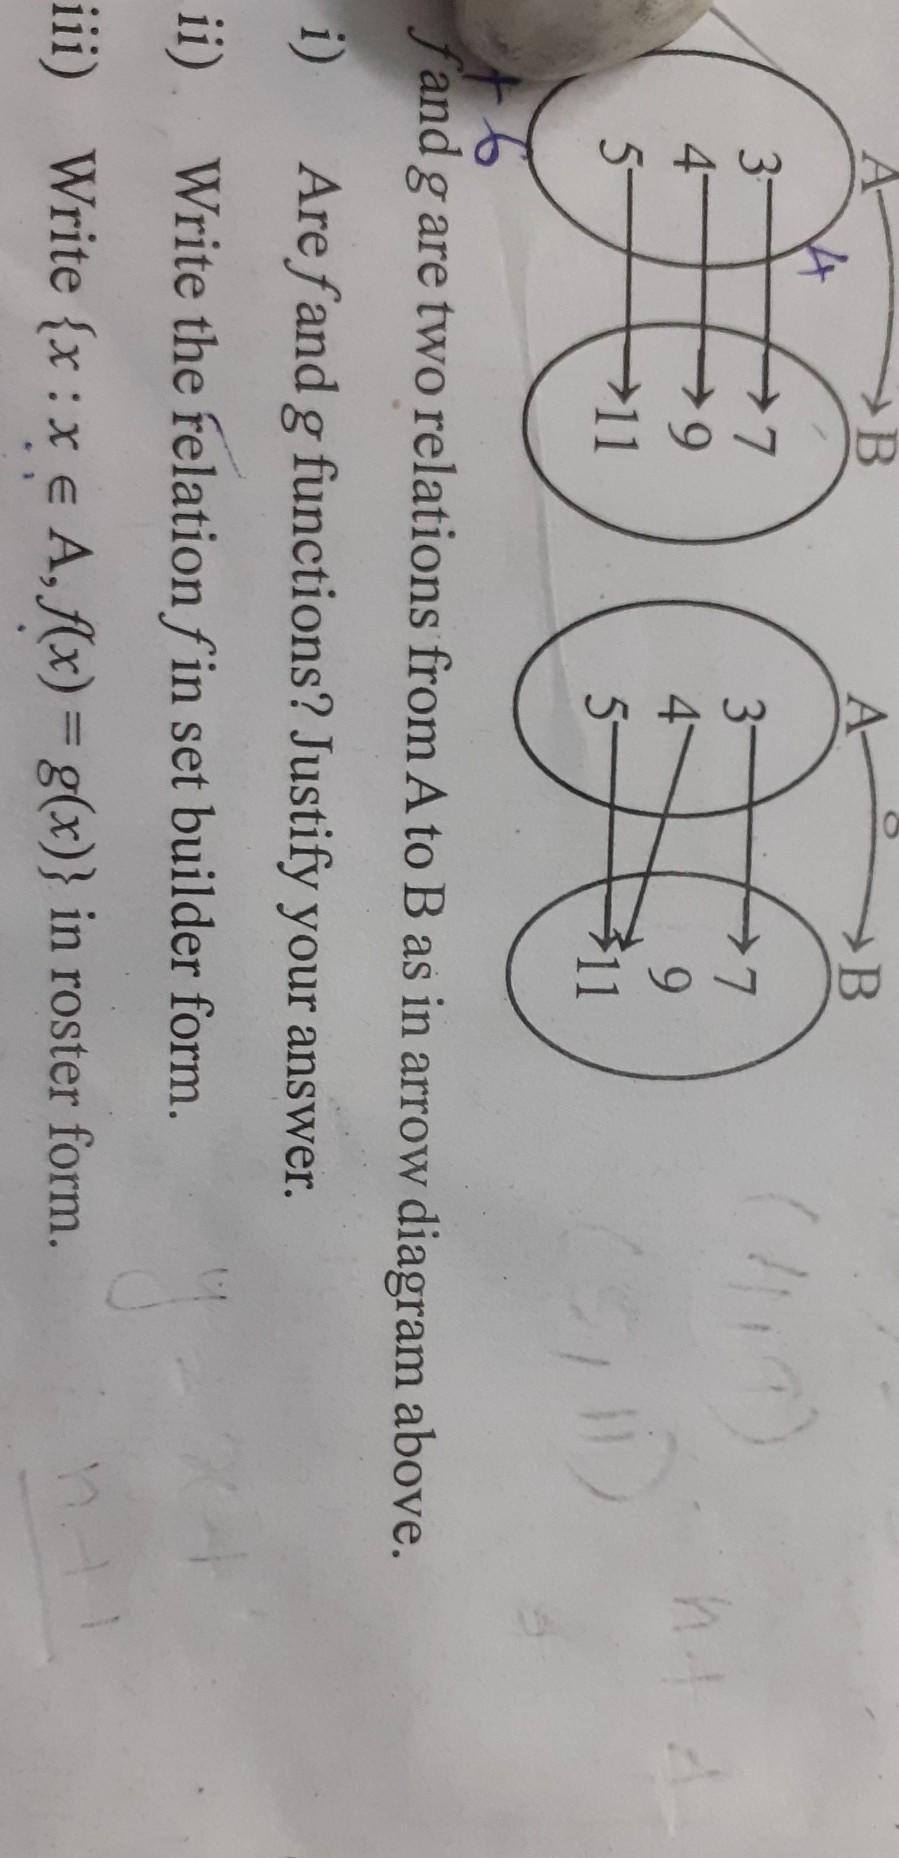 5-7x + 6f and g are two relations from A to B as